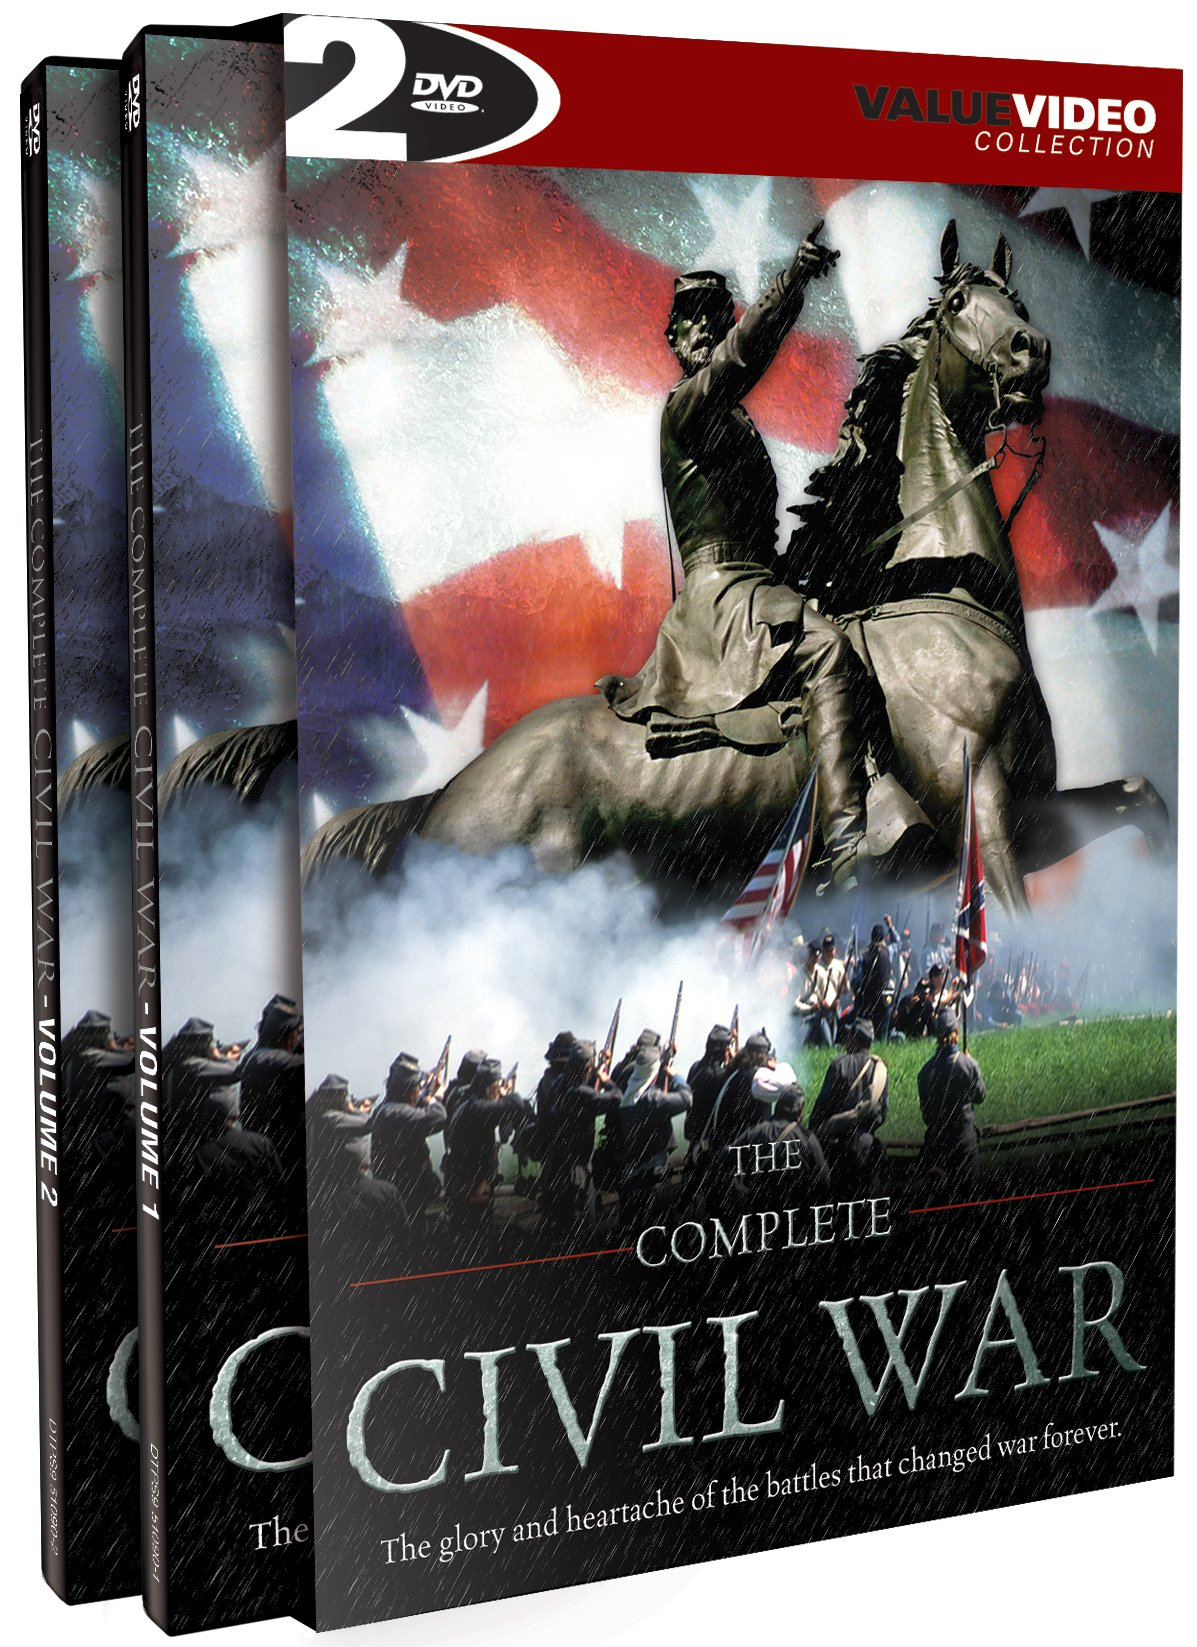 The Complete Civil War by IMAGE ENTERTAINMENT